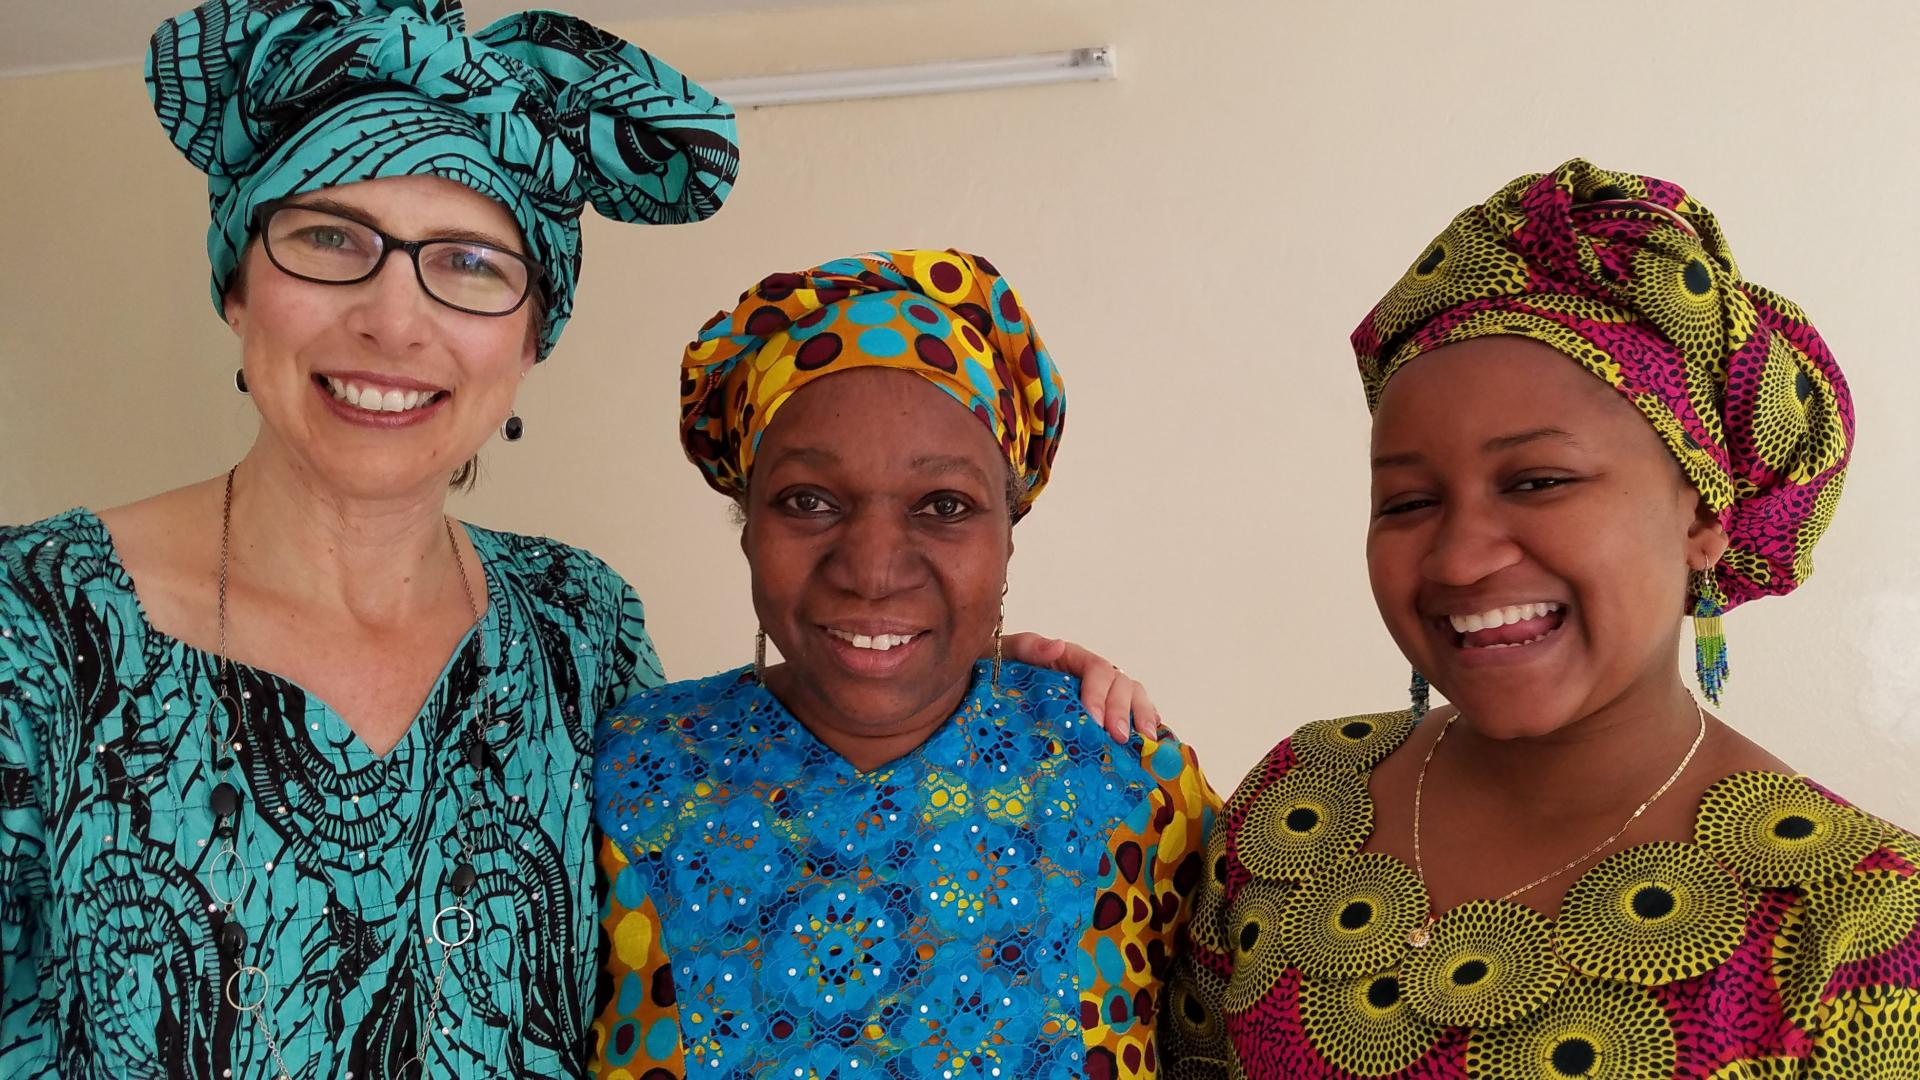 Michelle Homp (left) with Masake (Kane) Ly (far right), the Afrimath founder and director.